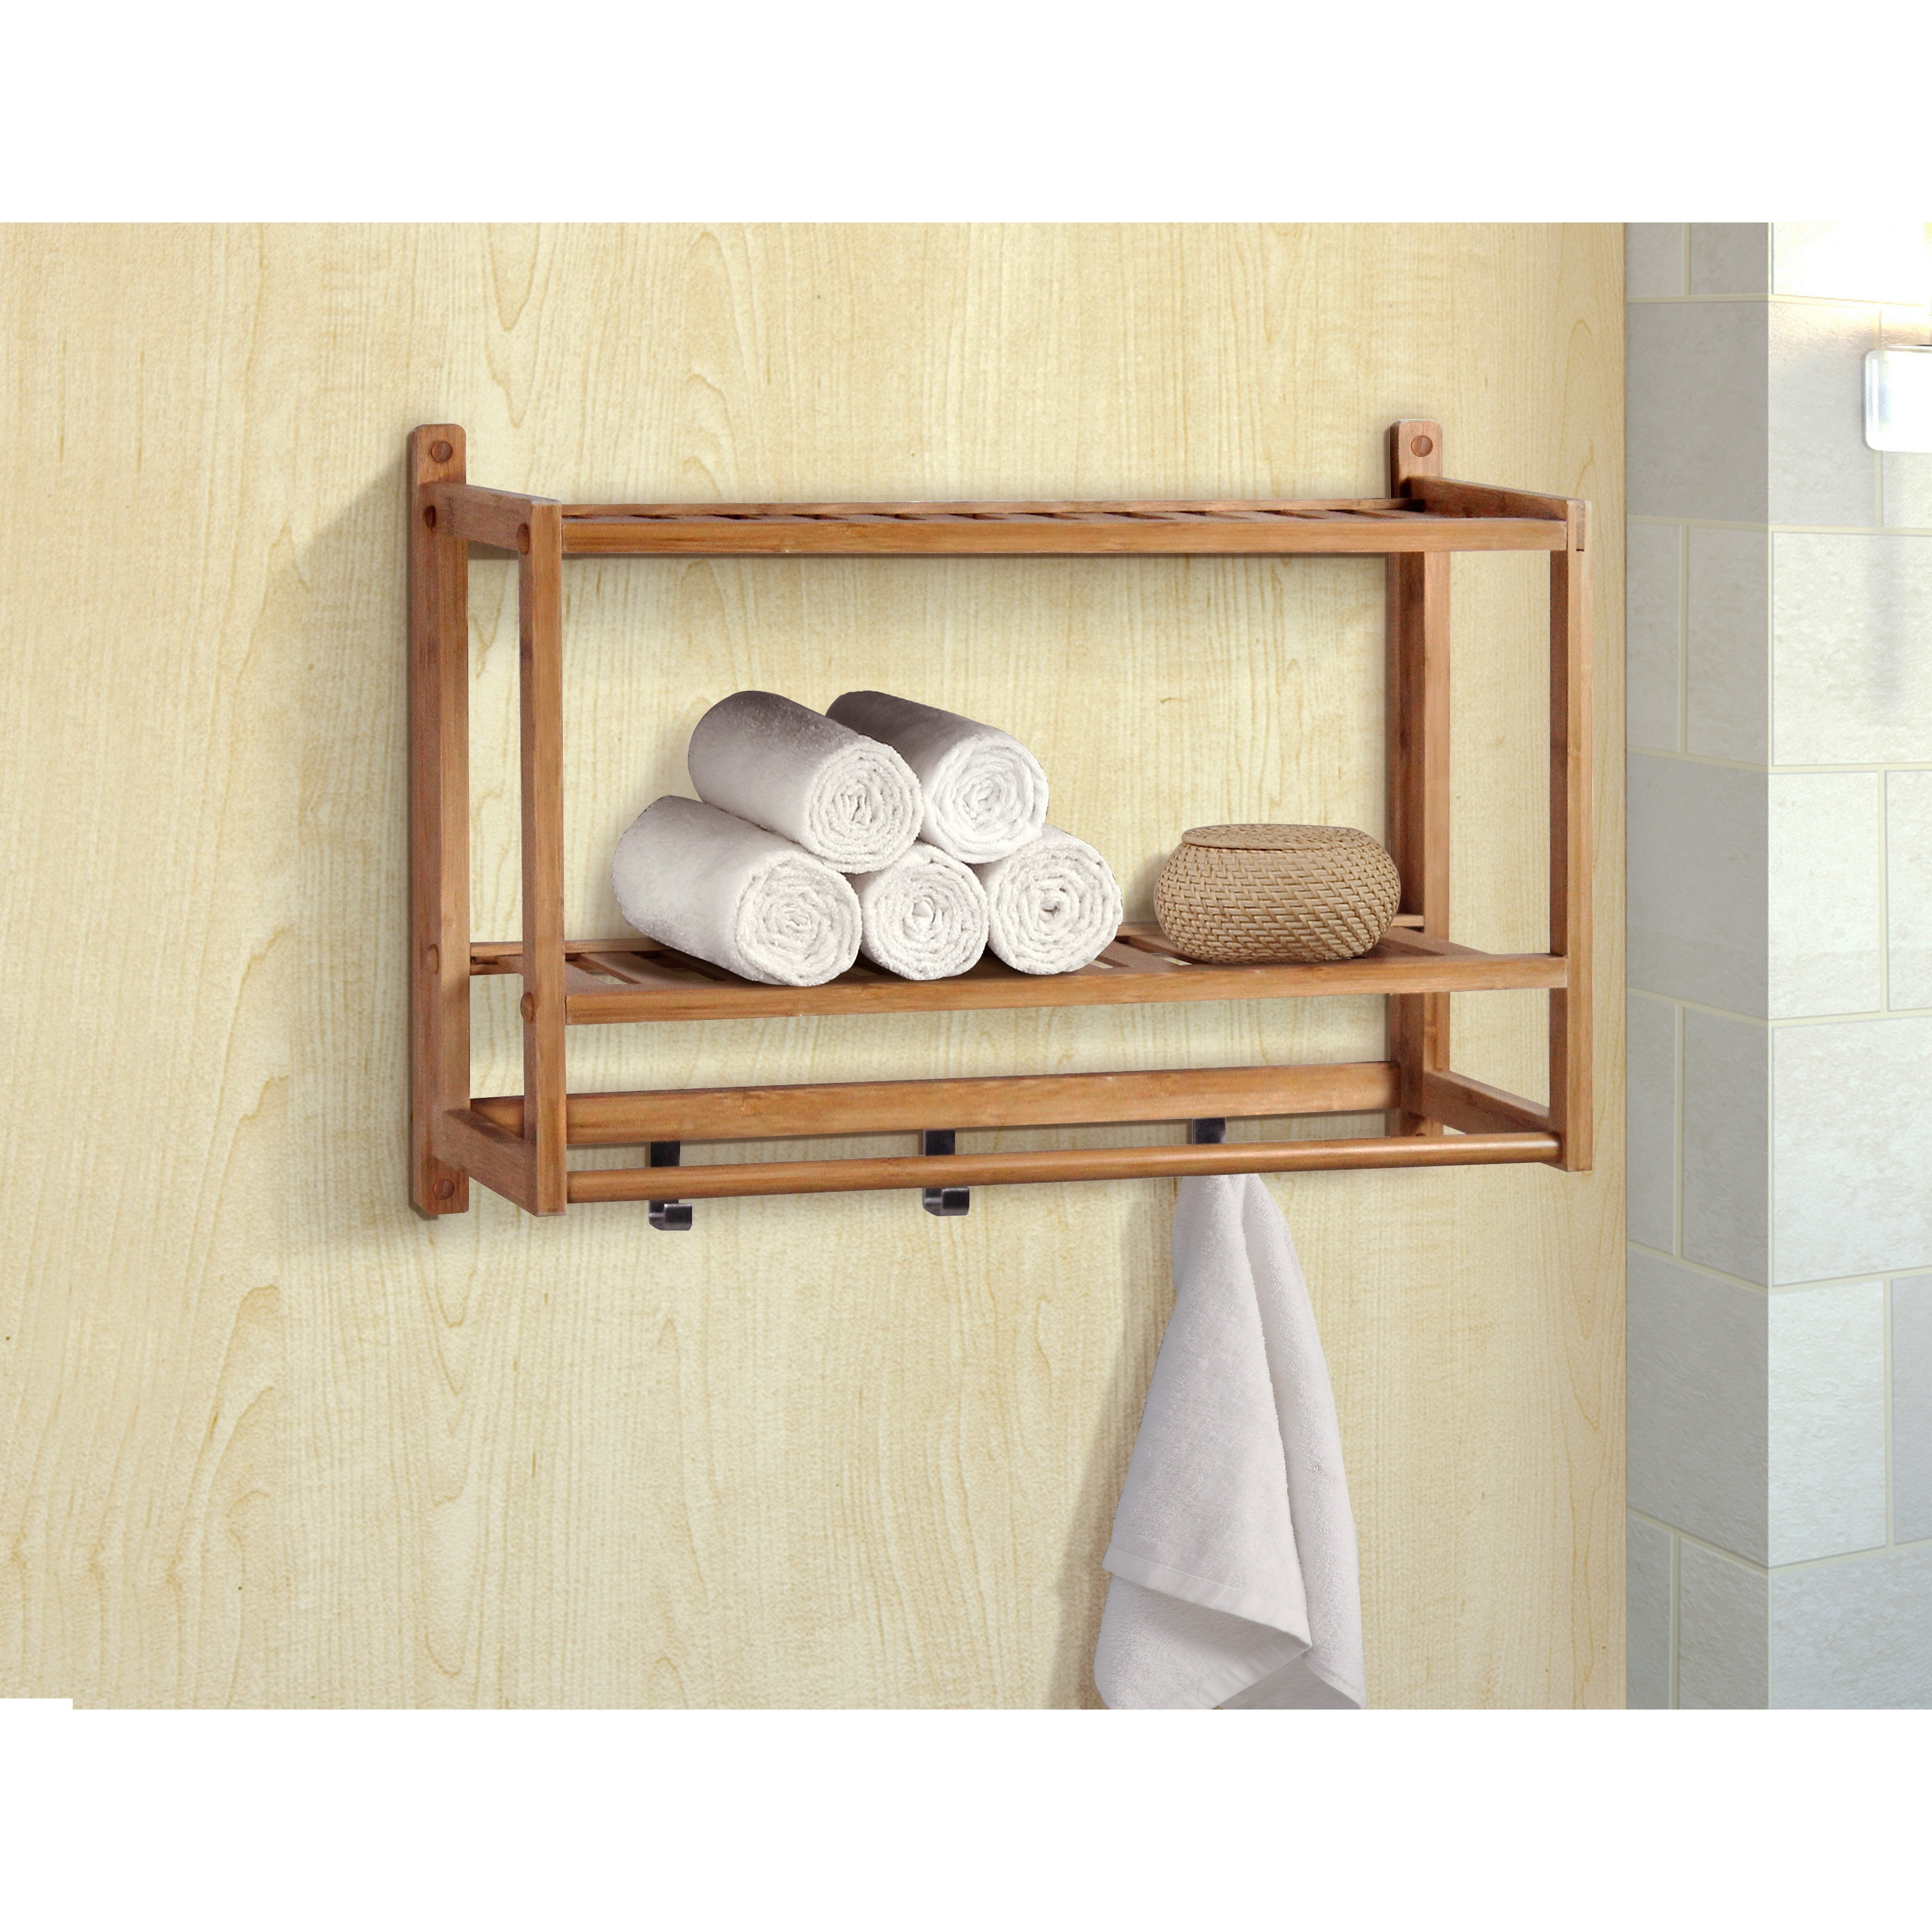 Gallerie Decor Natural Spa Bamboo Wall Organizer - Free Shipping ...